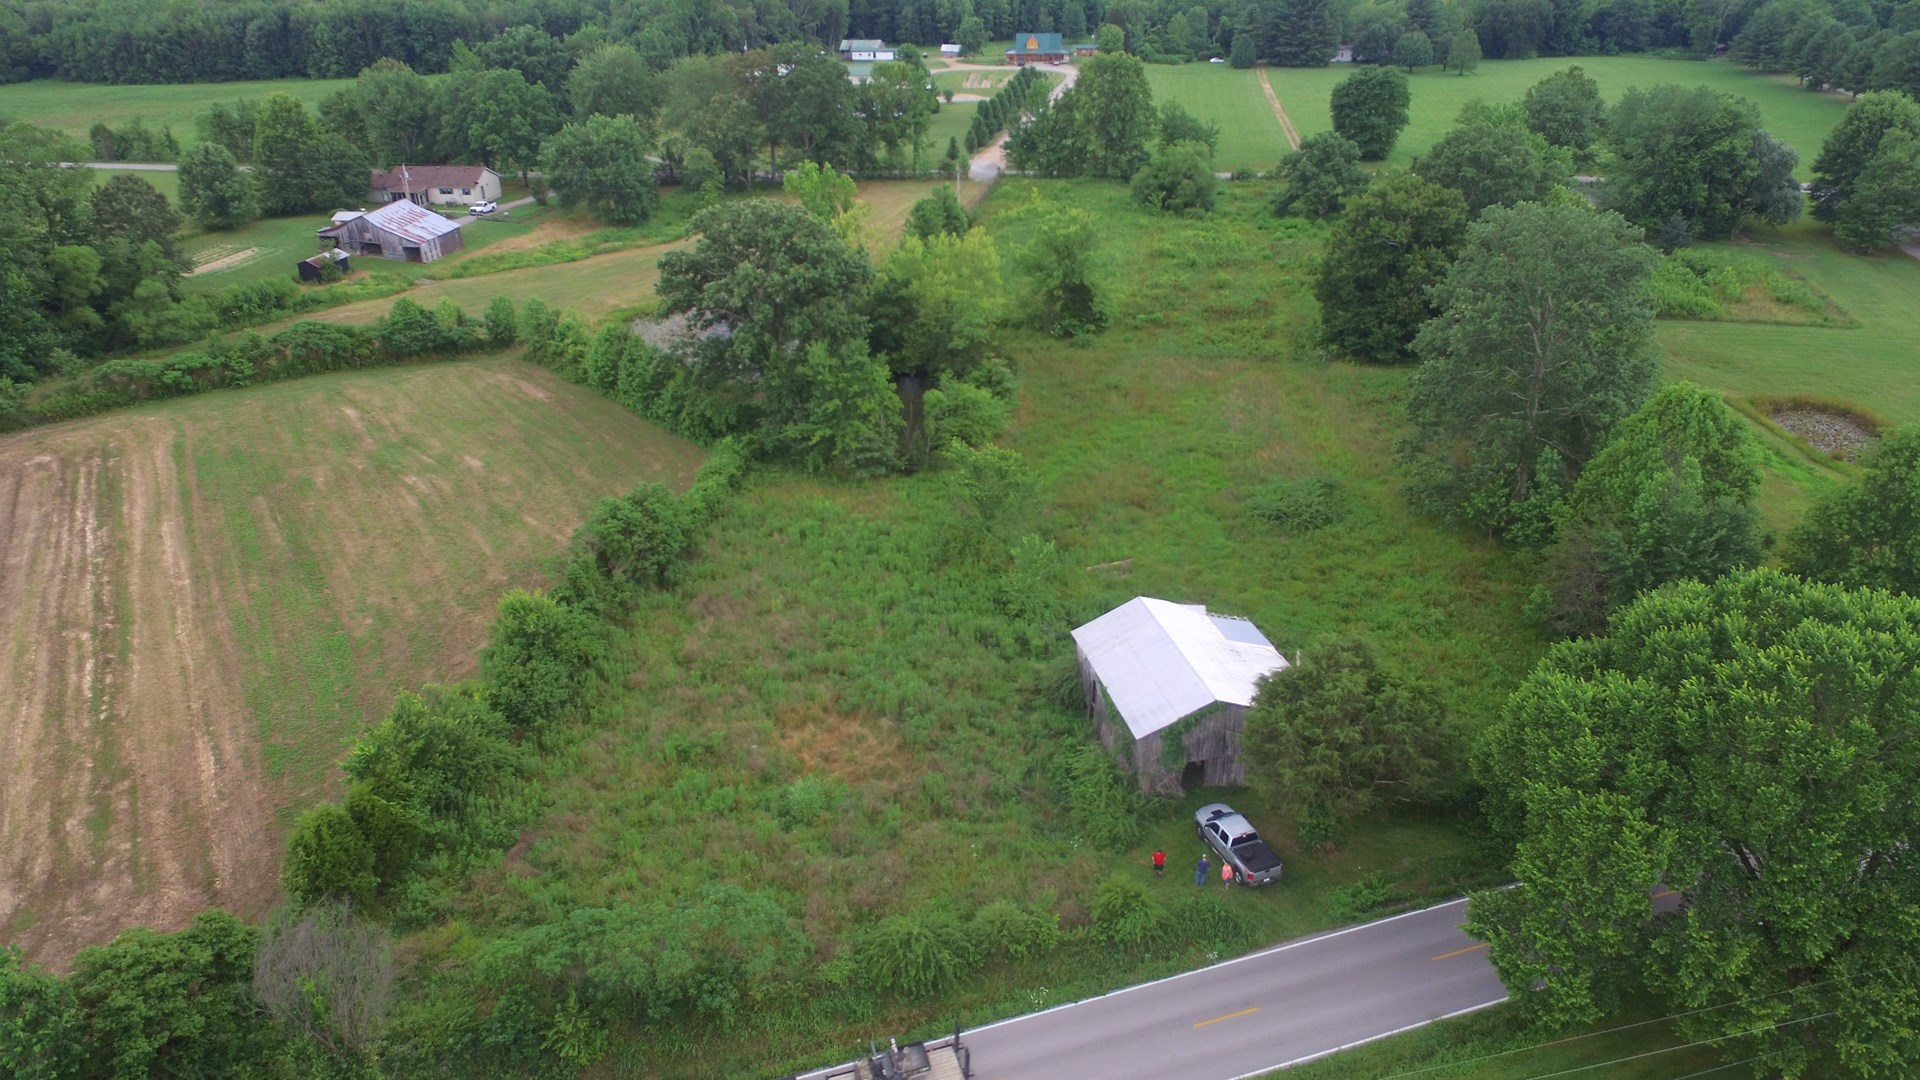 VACANT LAND-BUILDING SITES-BARN-PASTURE-POND-DUNNVILLE, KY.